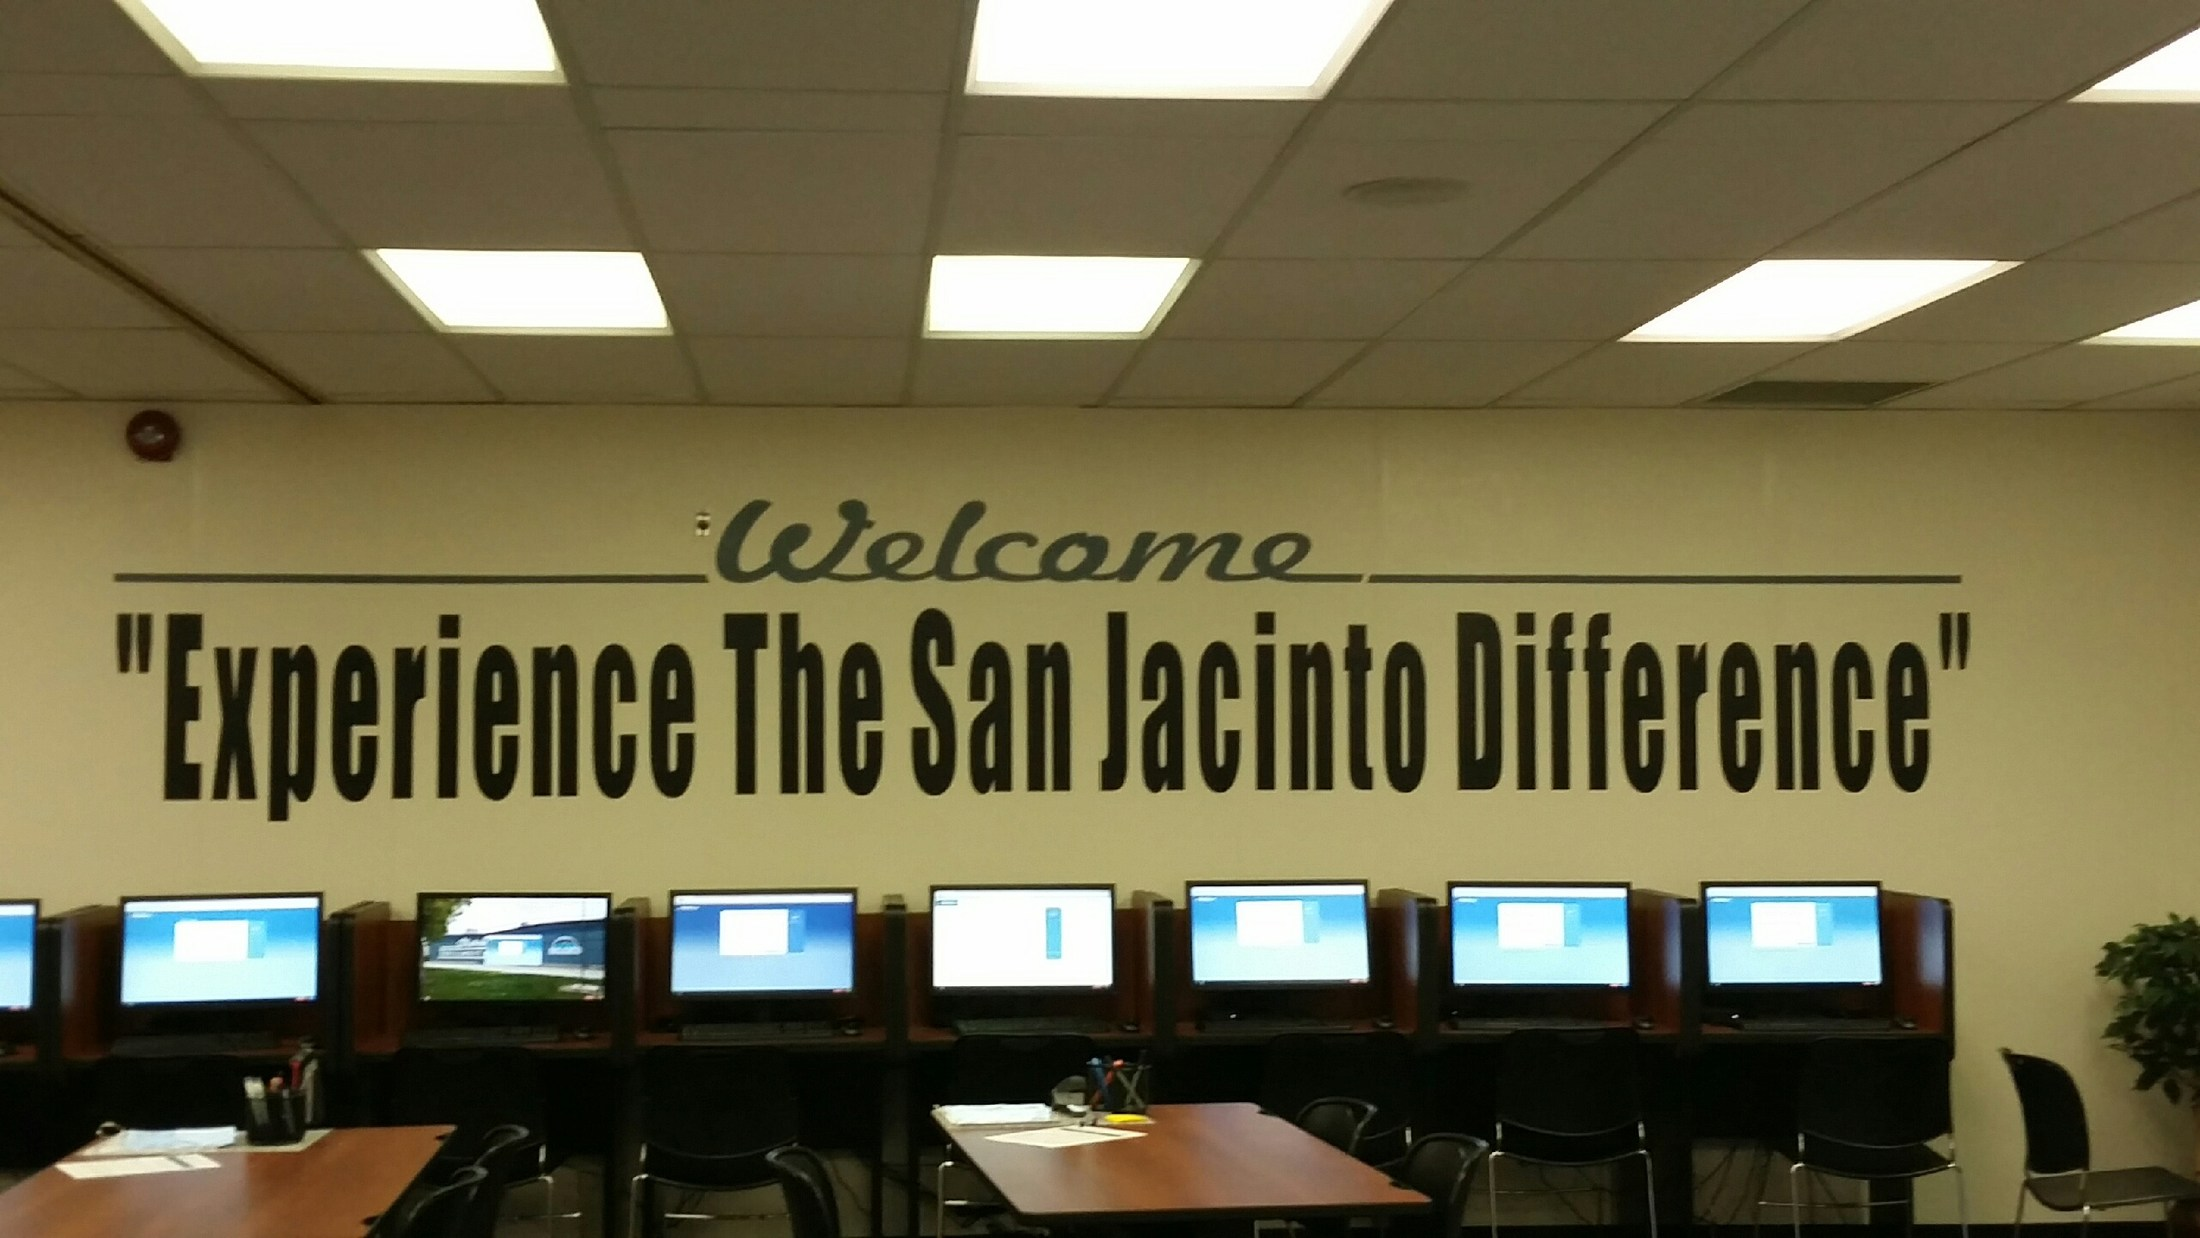 Experience the San Jacinto Difference